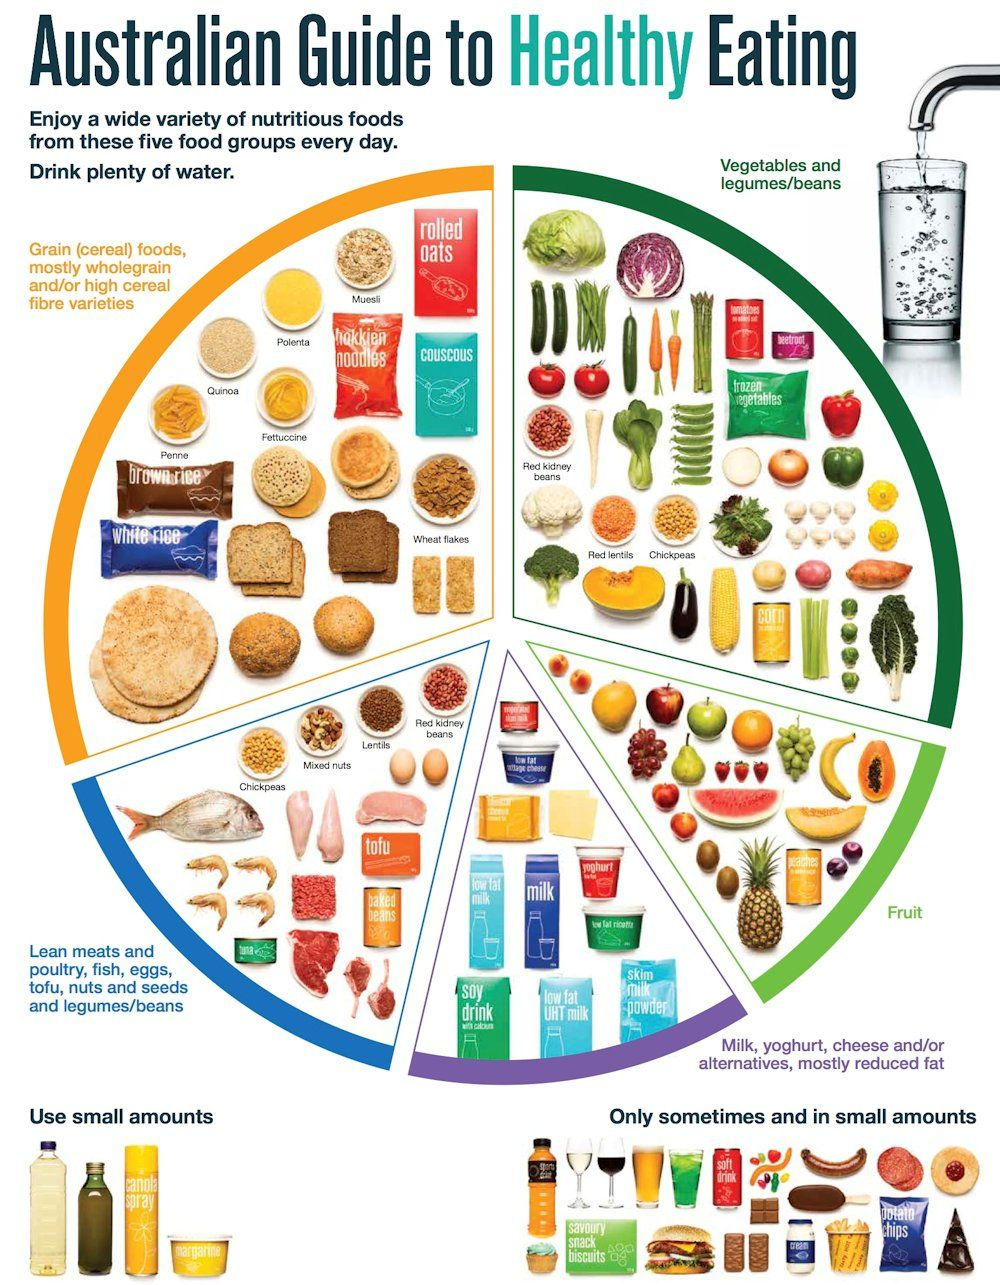 What exactly does a balanced meal look like? Five food